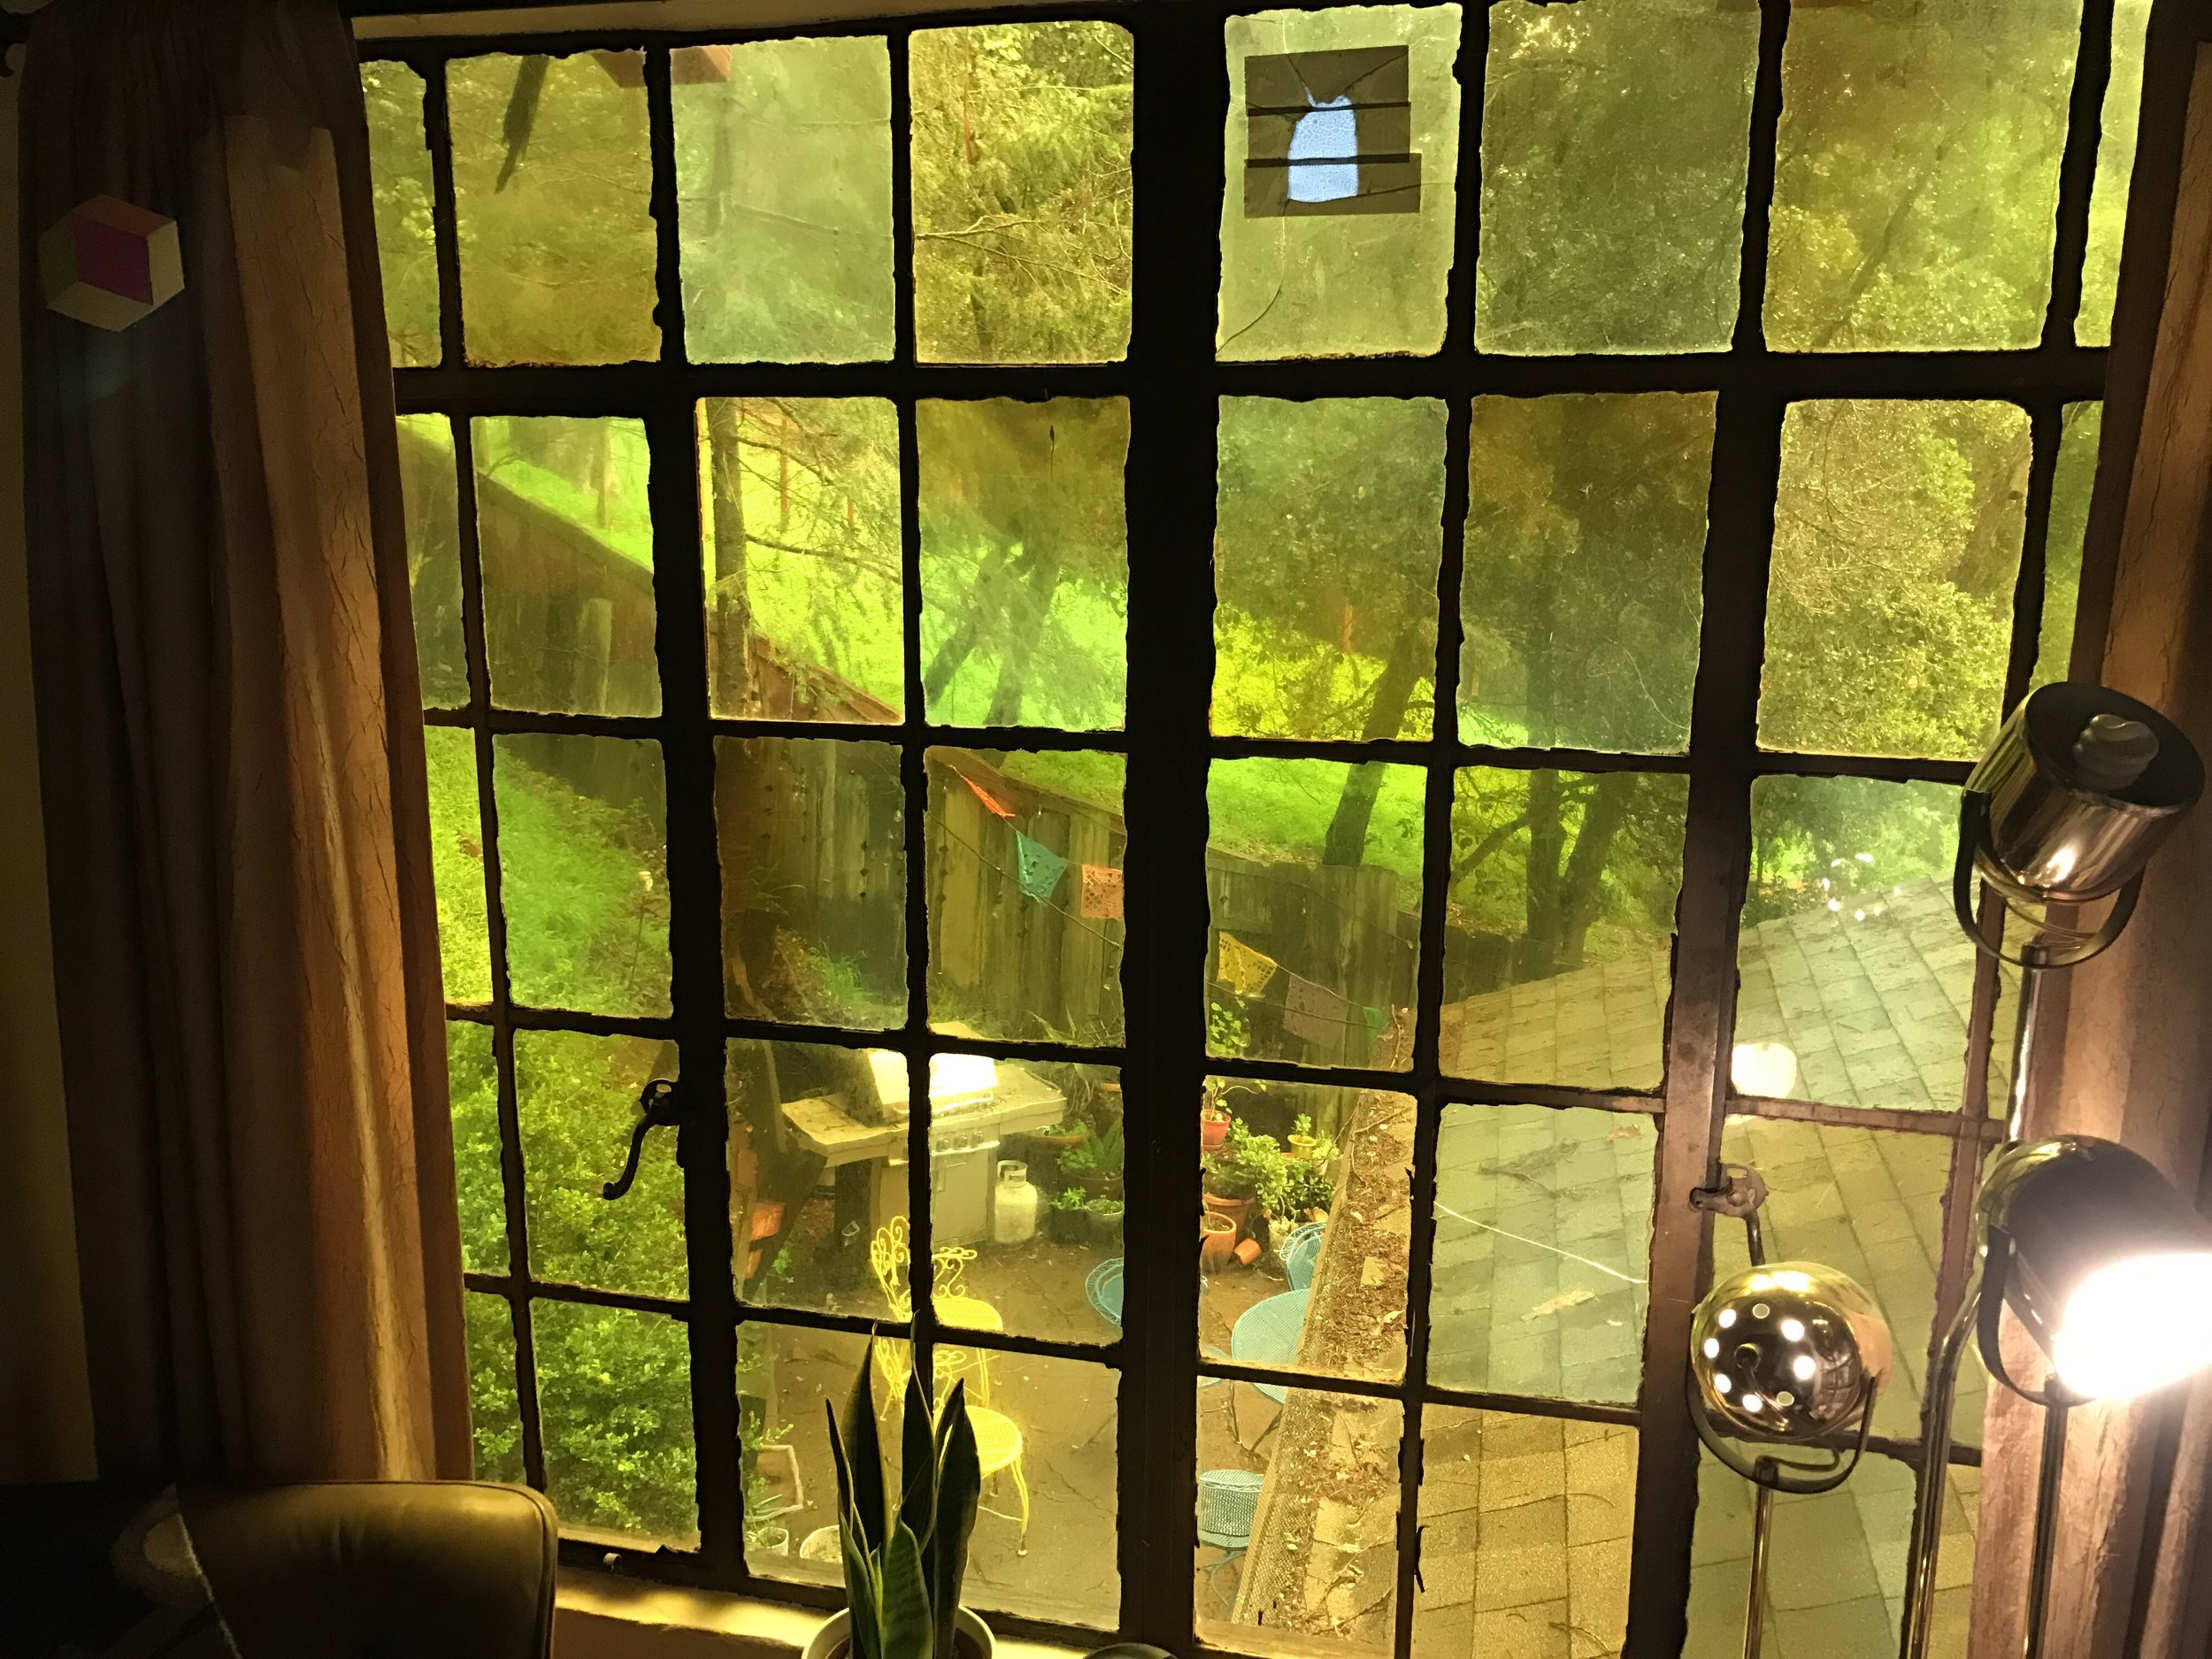 Certain windows have the darkest yellow glass, like this Southeastern bedroom wall. The depth of coloring in the amber glass seems to be sorted by their compass directions with the lightest shades facing Northwest.